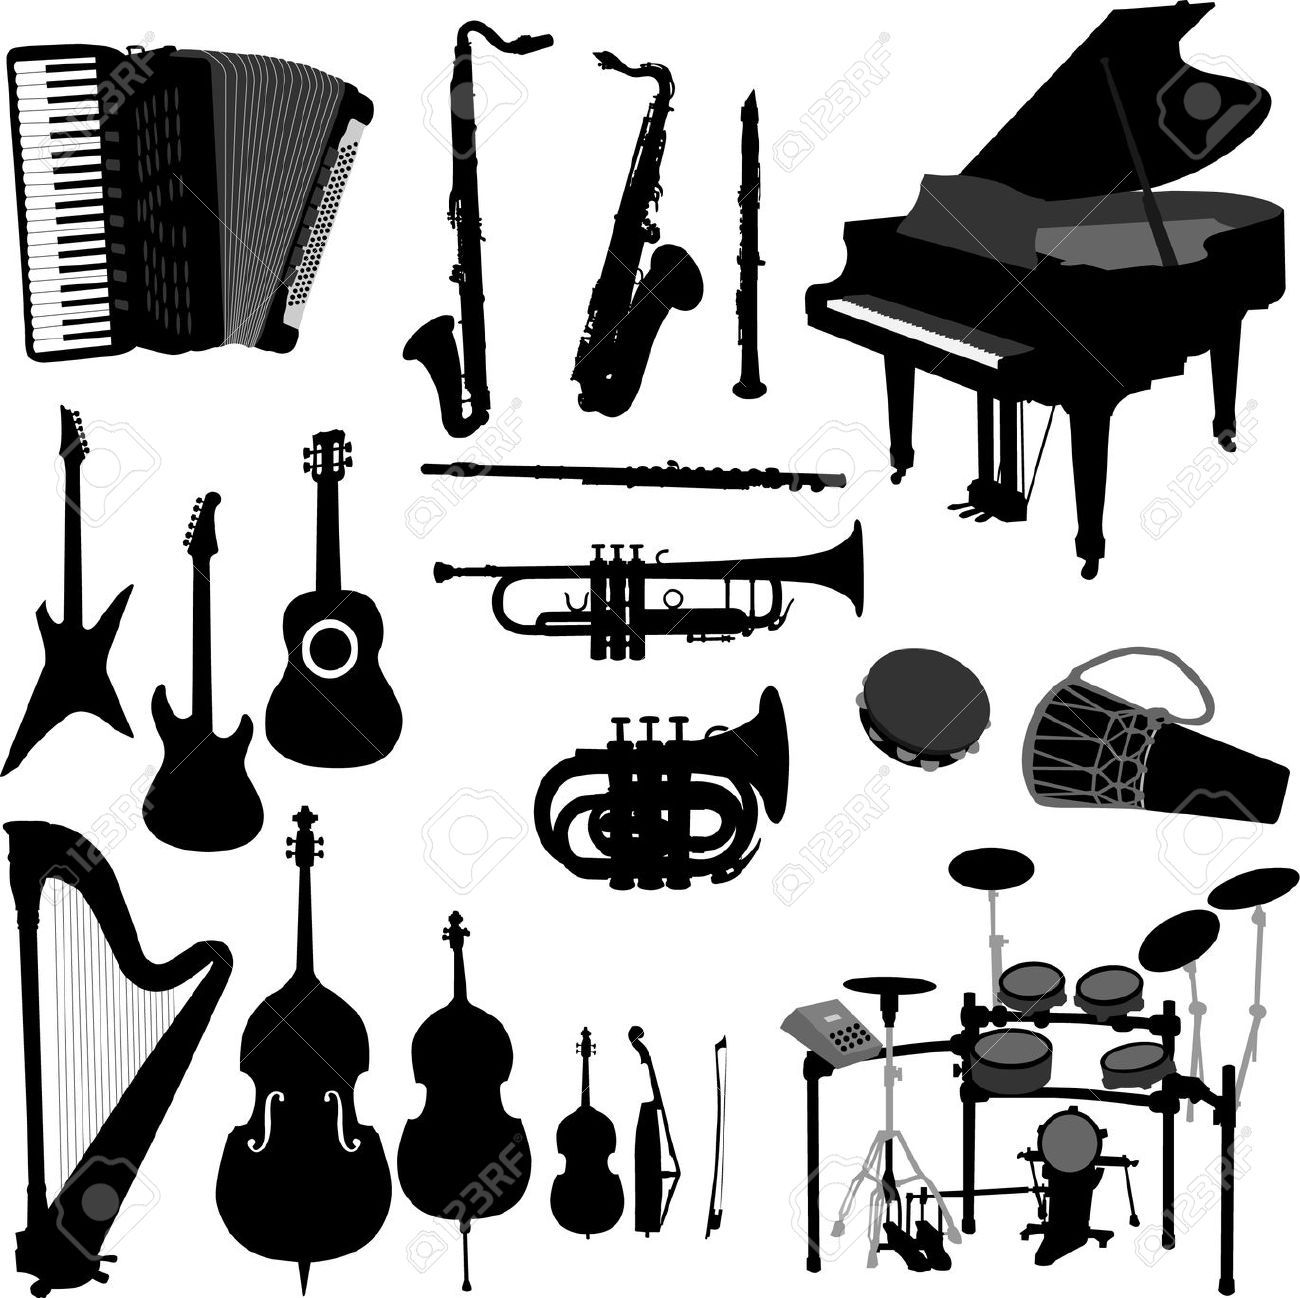 jazz music instruments